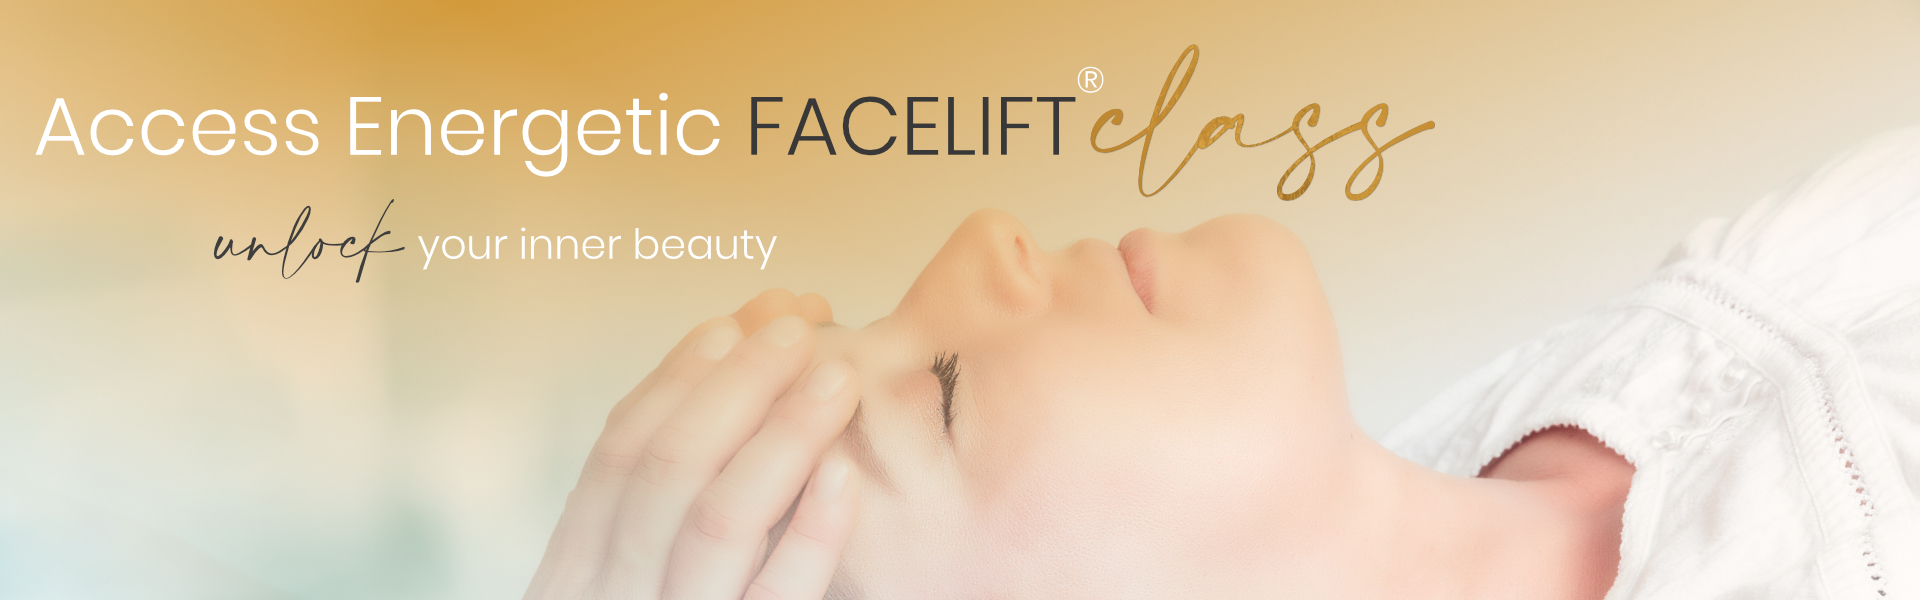 Access Energetic Facelift Class